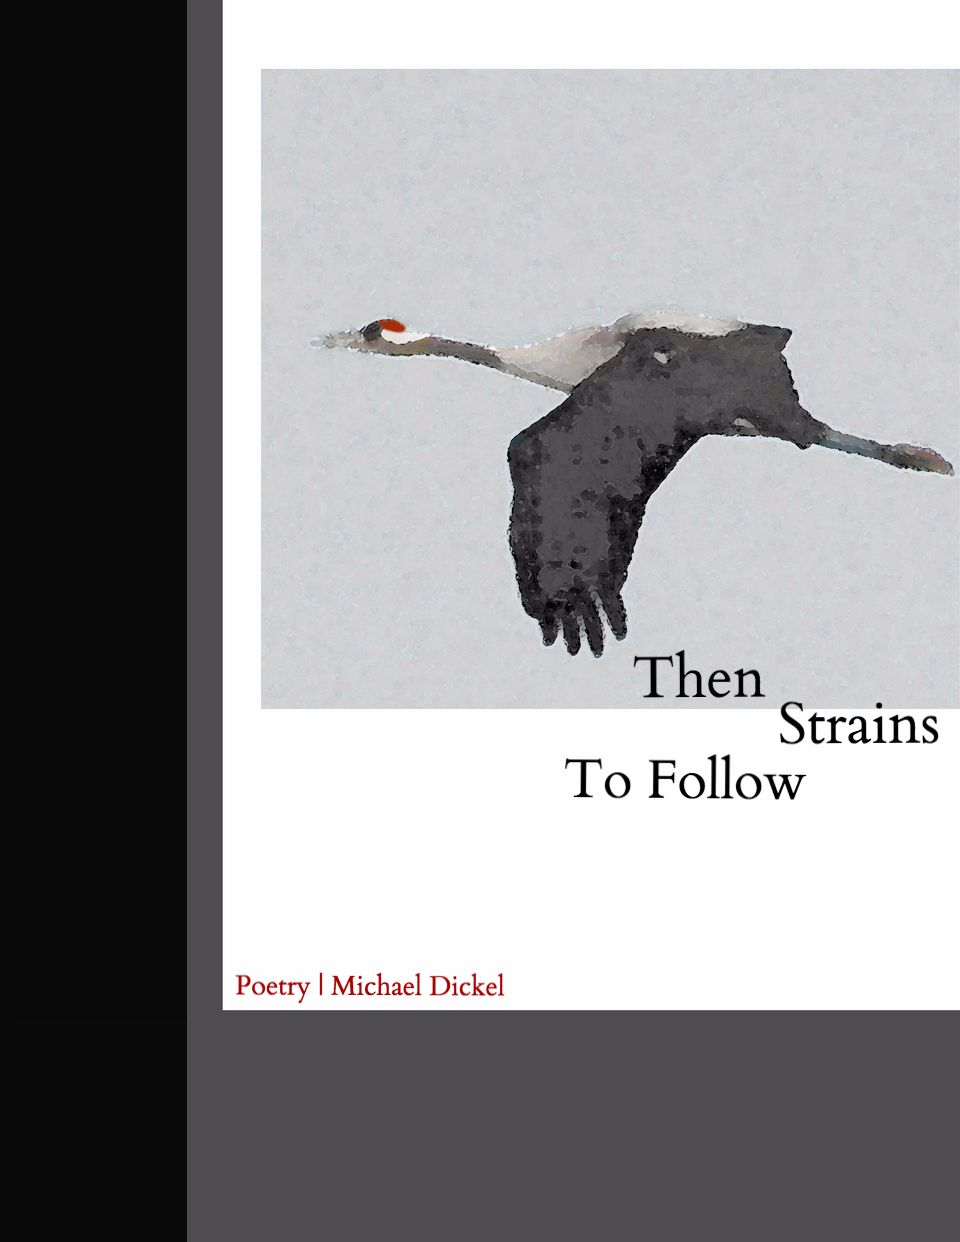 Cover of Michael Dickel's chapbook, Then Strains to Follow (2012). Click to read online or download a copy.